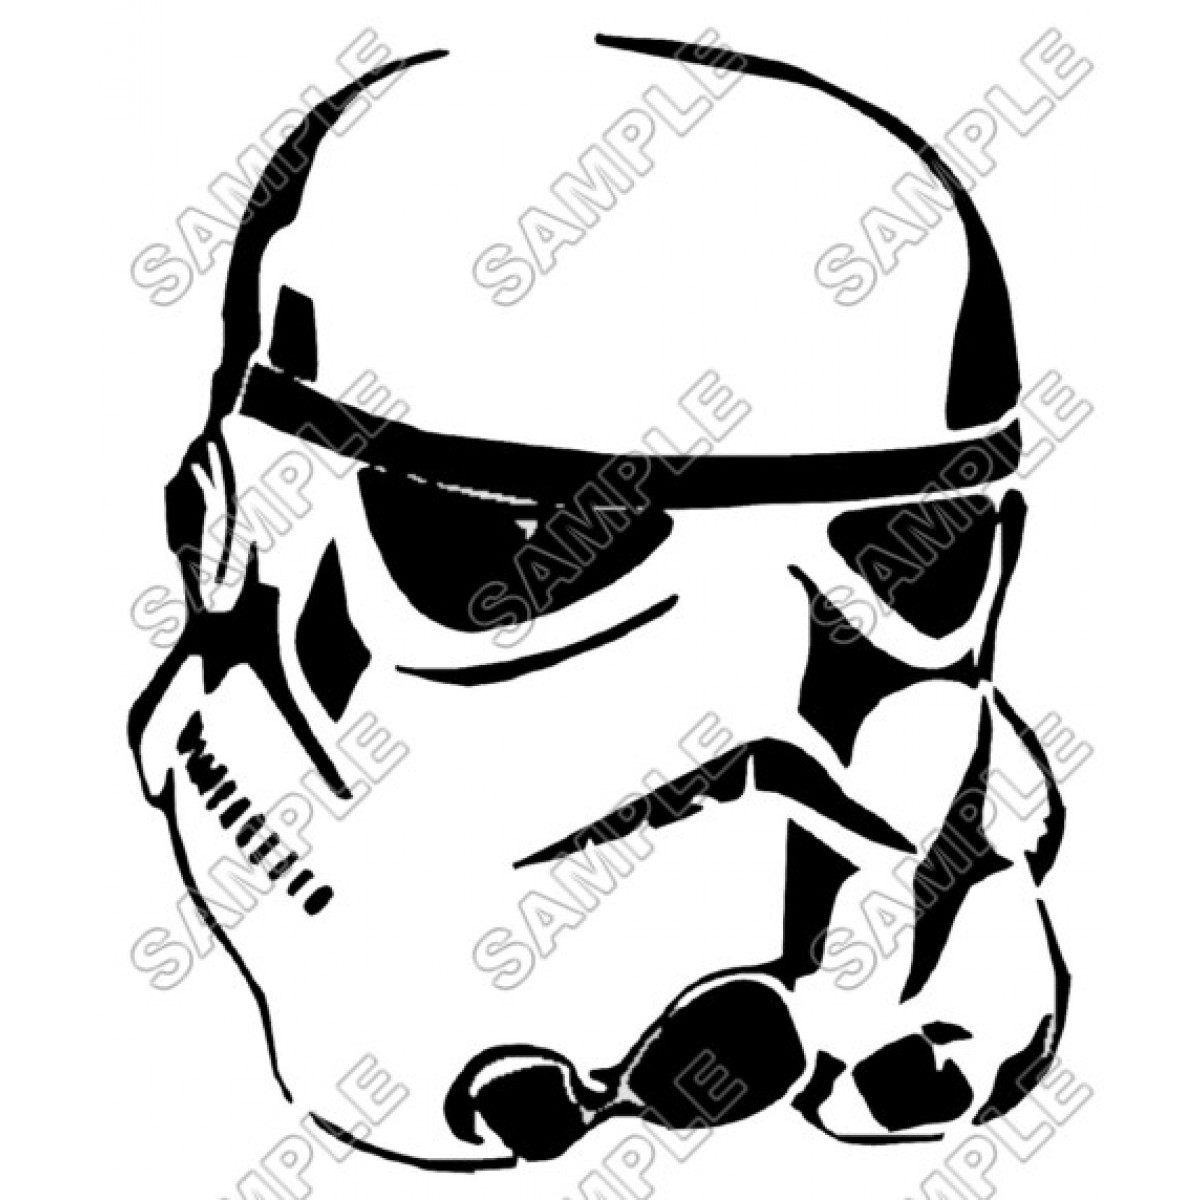 1200x1200 Personalized Iron On Transfers! Star Wars Stormtrooper T Shirt